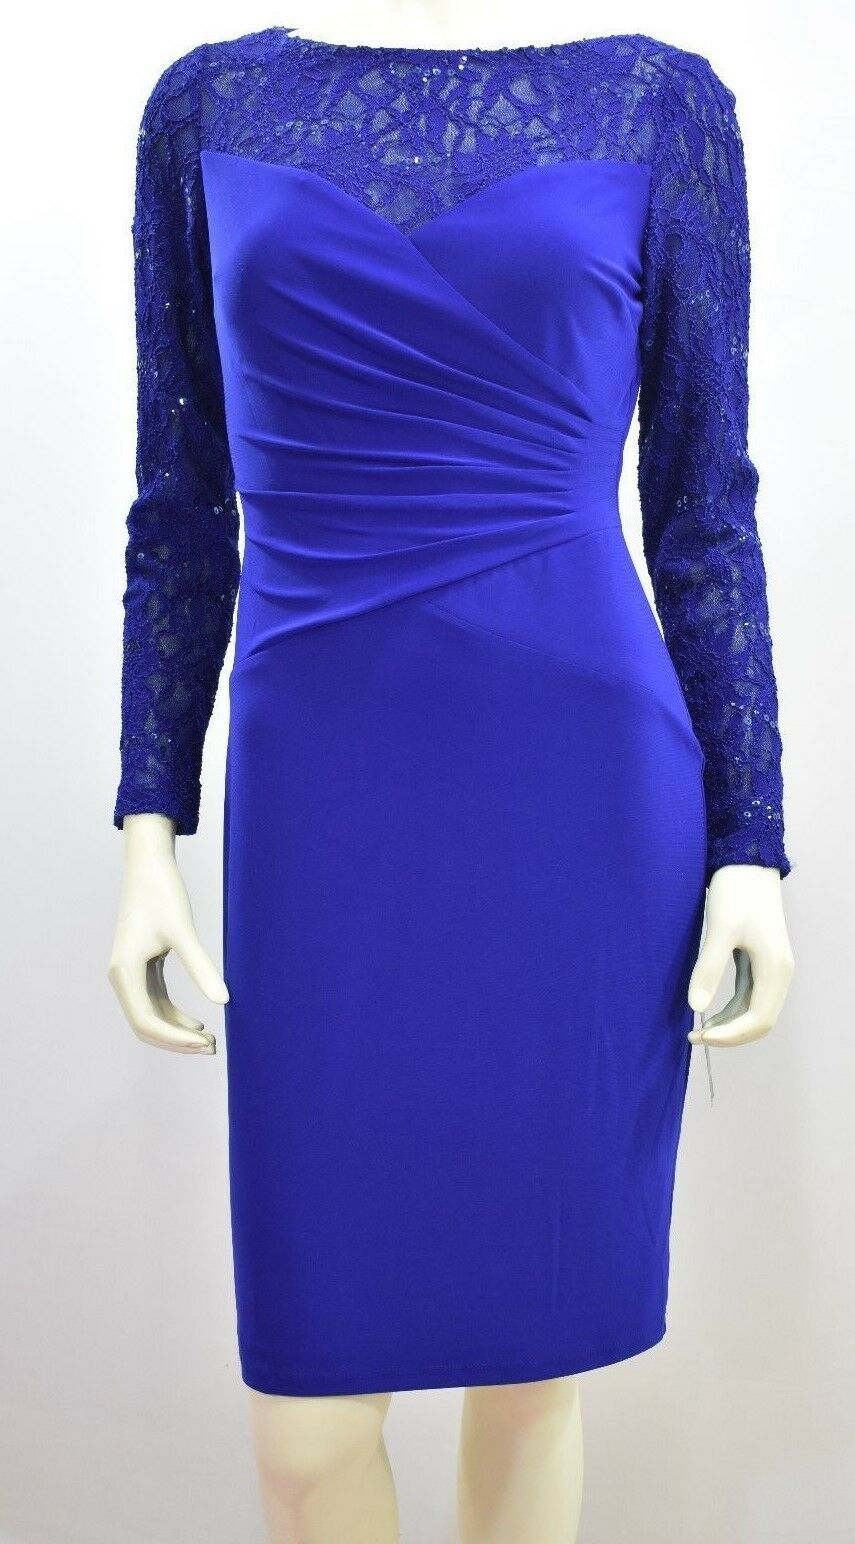 RALPH LAUREN LACE SEQUINNED SHEATH DRESS SZ 4 NEW WITH TAG